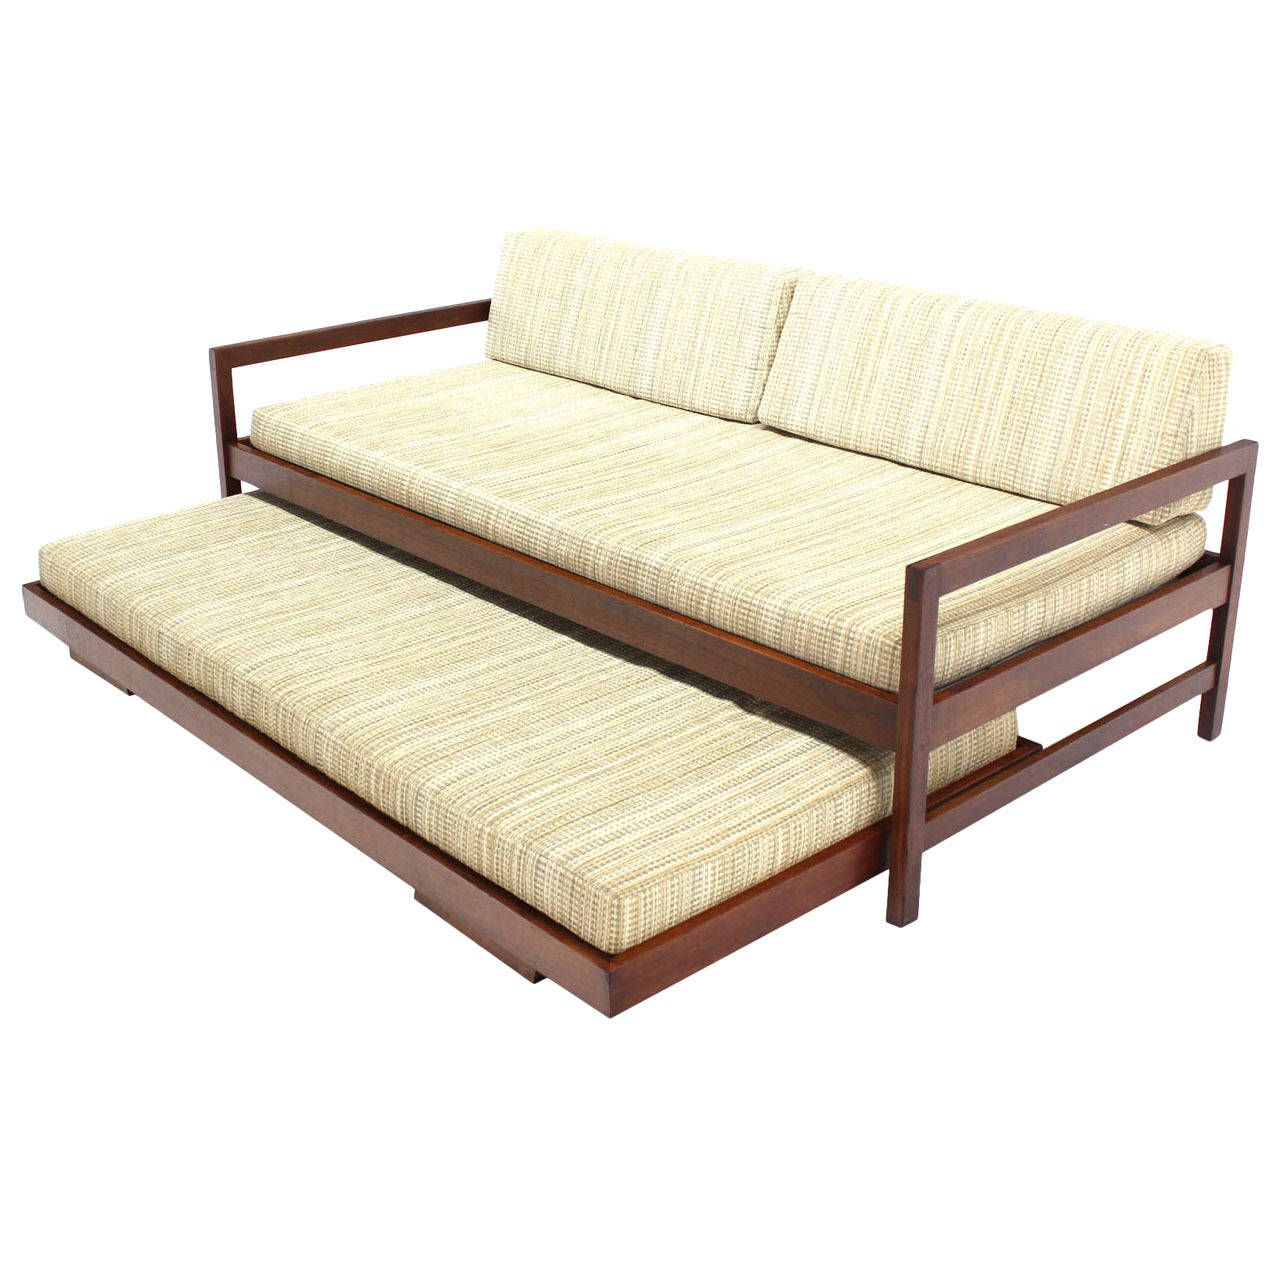 Solid Walnut Frame Mid Century Modern Trundle Pull Out Bed Daybed Sofa